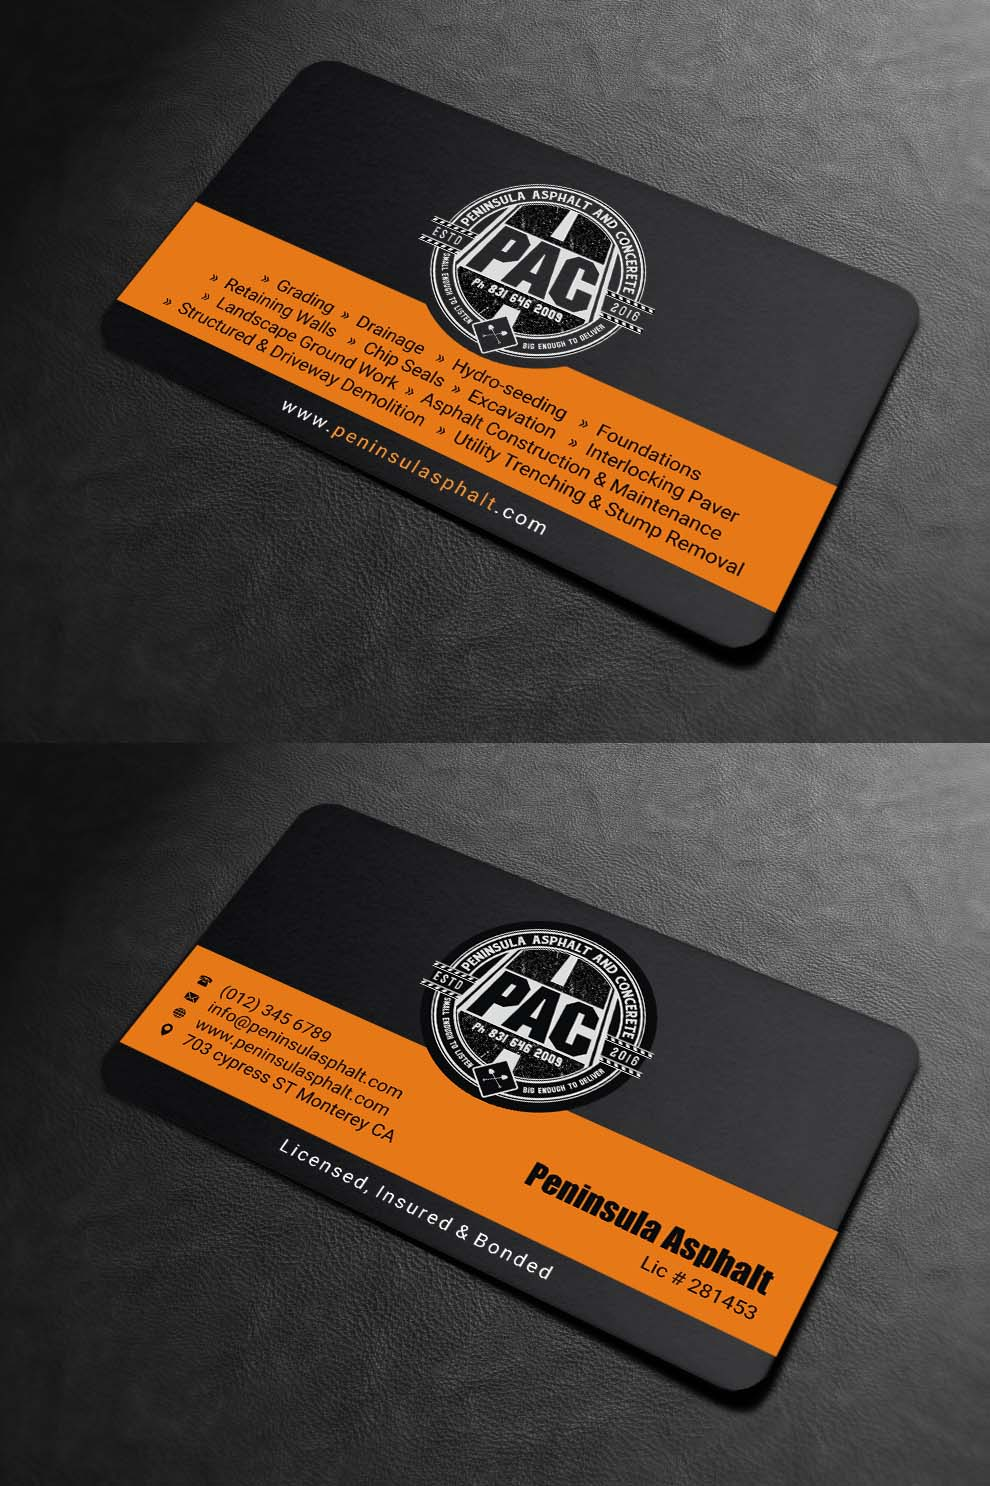 business card design by indian_ashok for peninsula asphalt and concrete design 18059977 - Contractor Business Cards